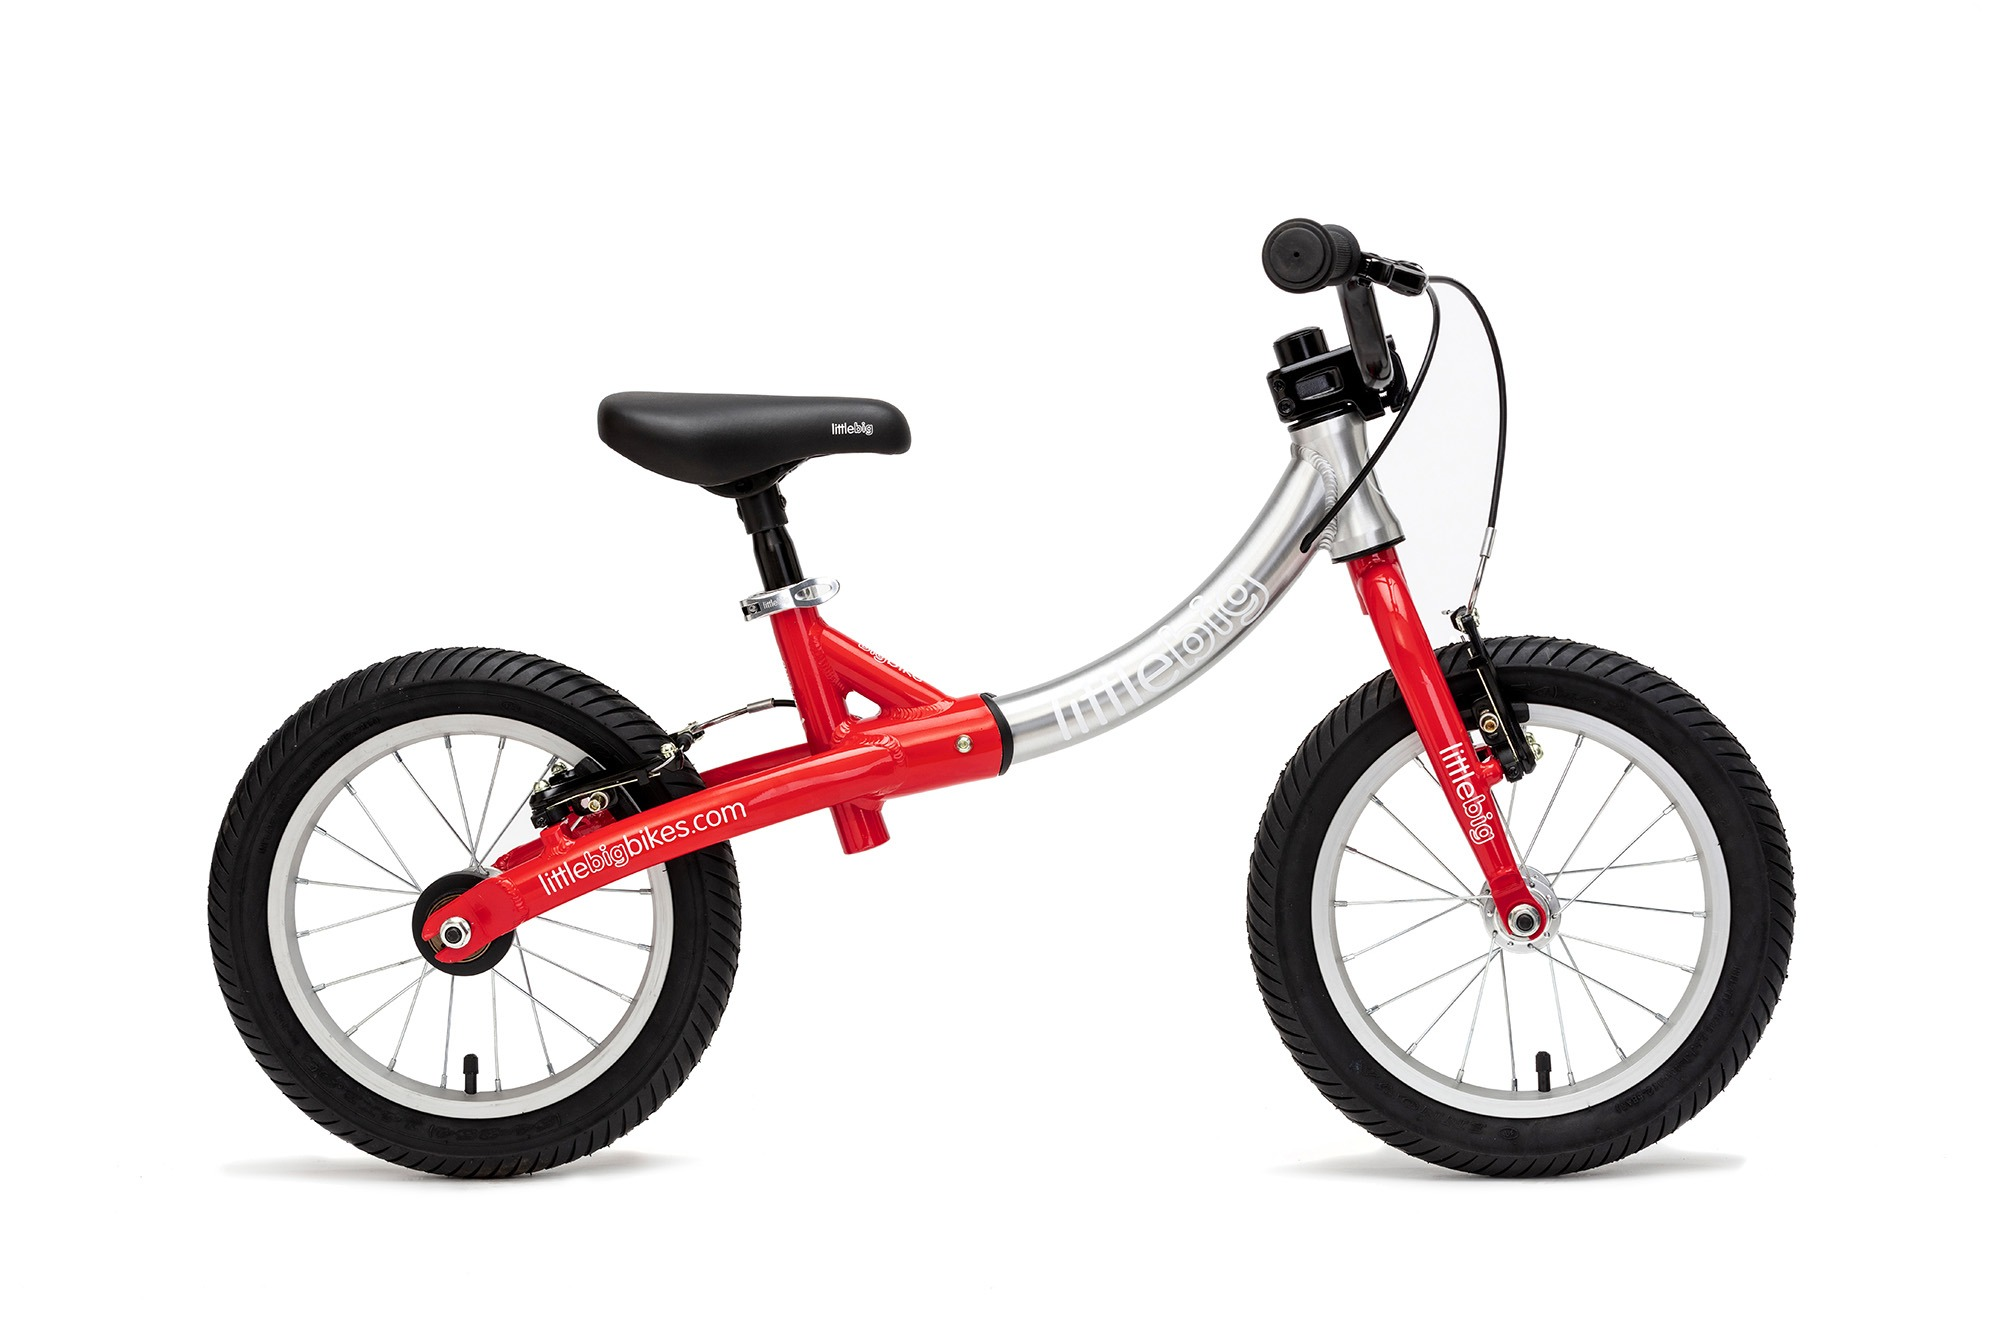 big balance bike flame red side viewbig balance bike flame red side view